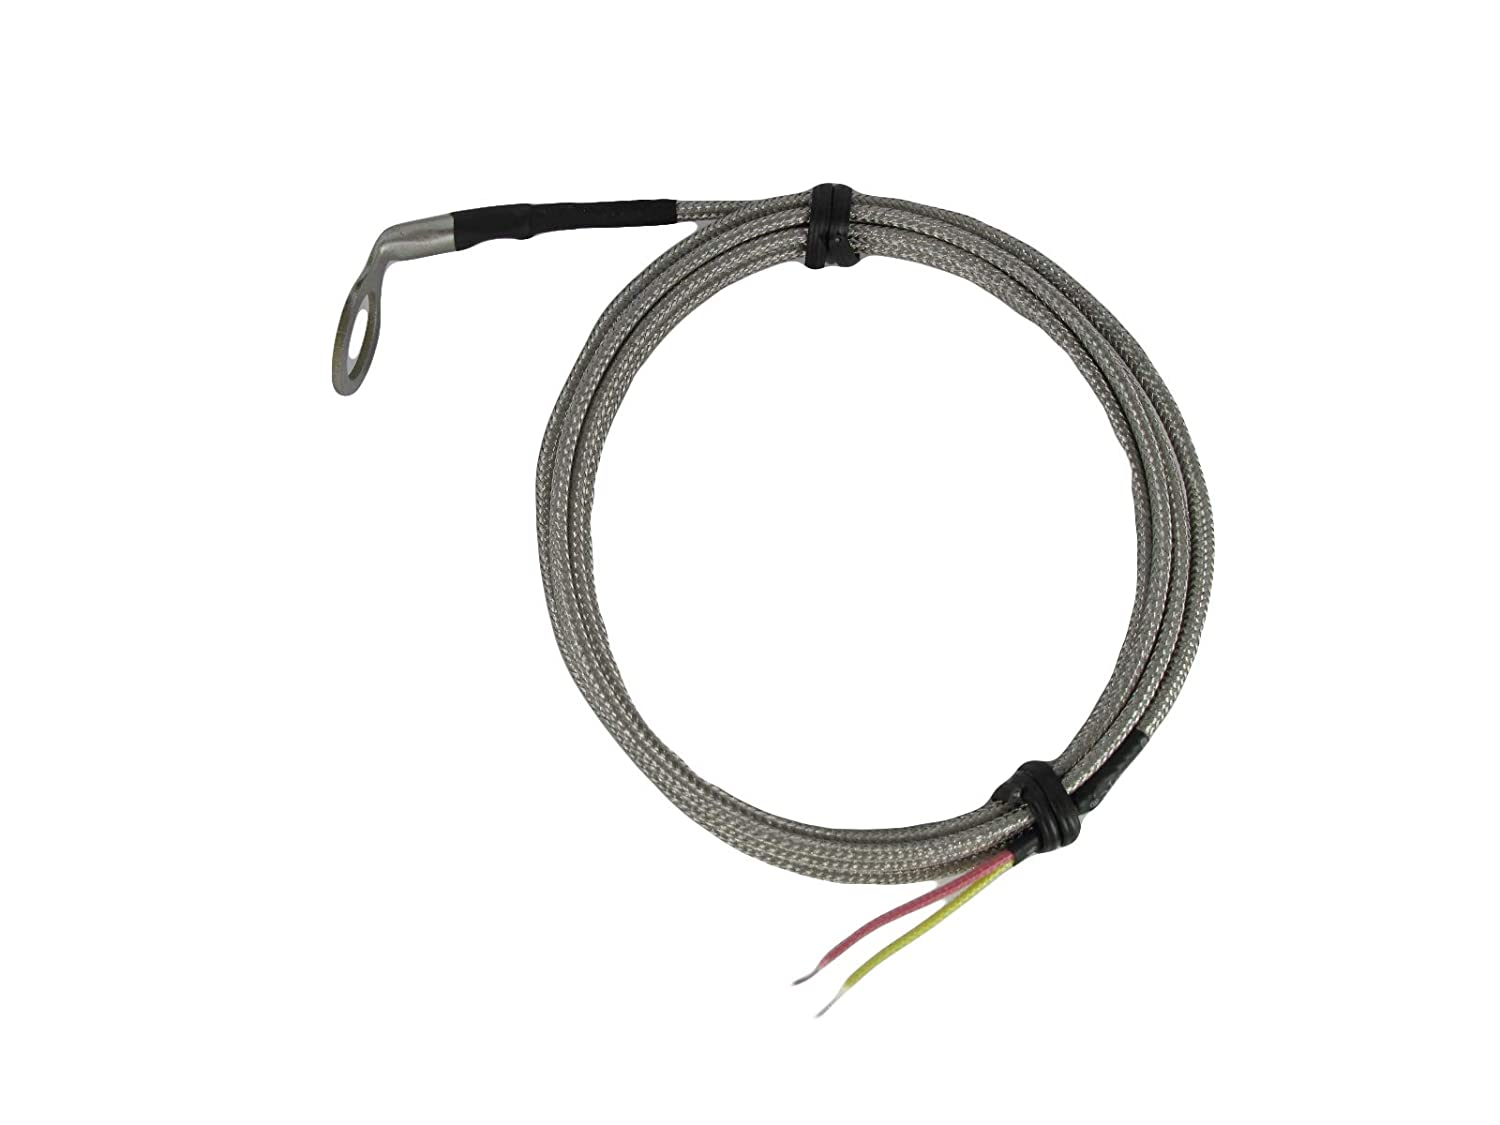 14mm id /& 3m Lead Wire with Mini Connector DTC K Type Thermocouple Temperature Sensors for Cylinder Head Temperature CHT